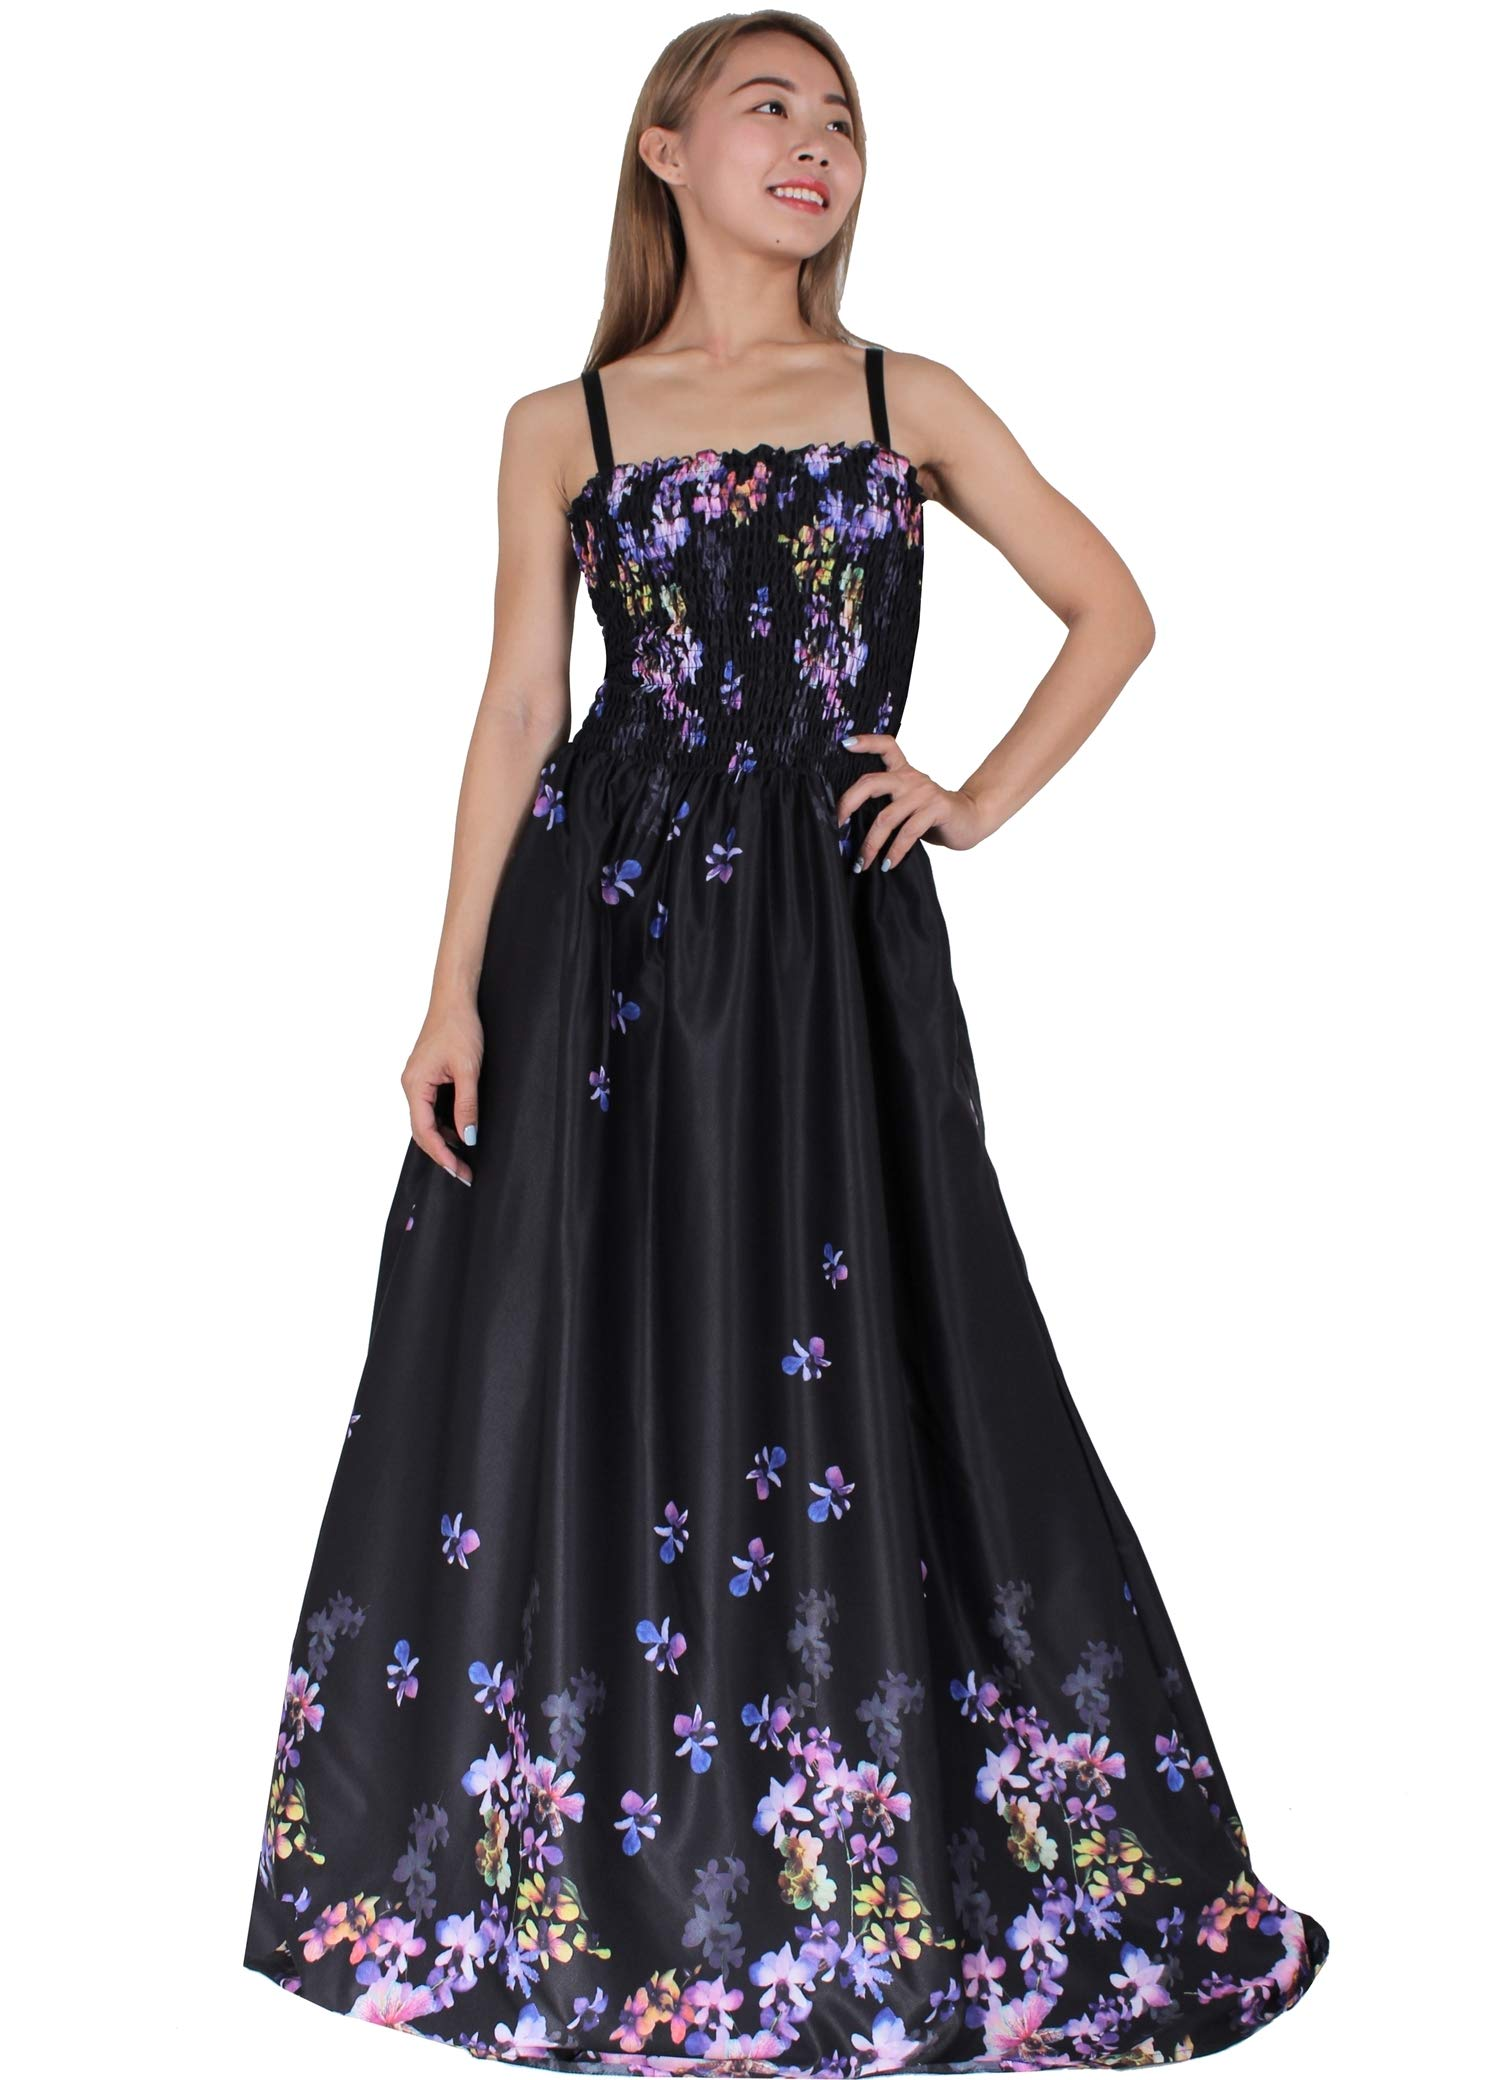 Maxi Dress Plus Size Clothing Black Casual Bridesmaid Party Evening Floral Women